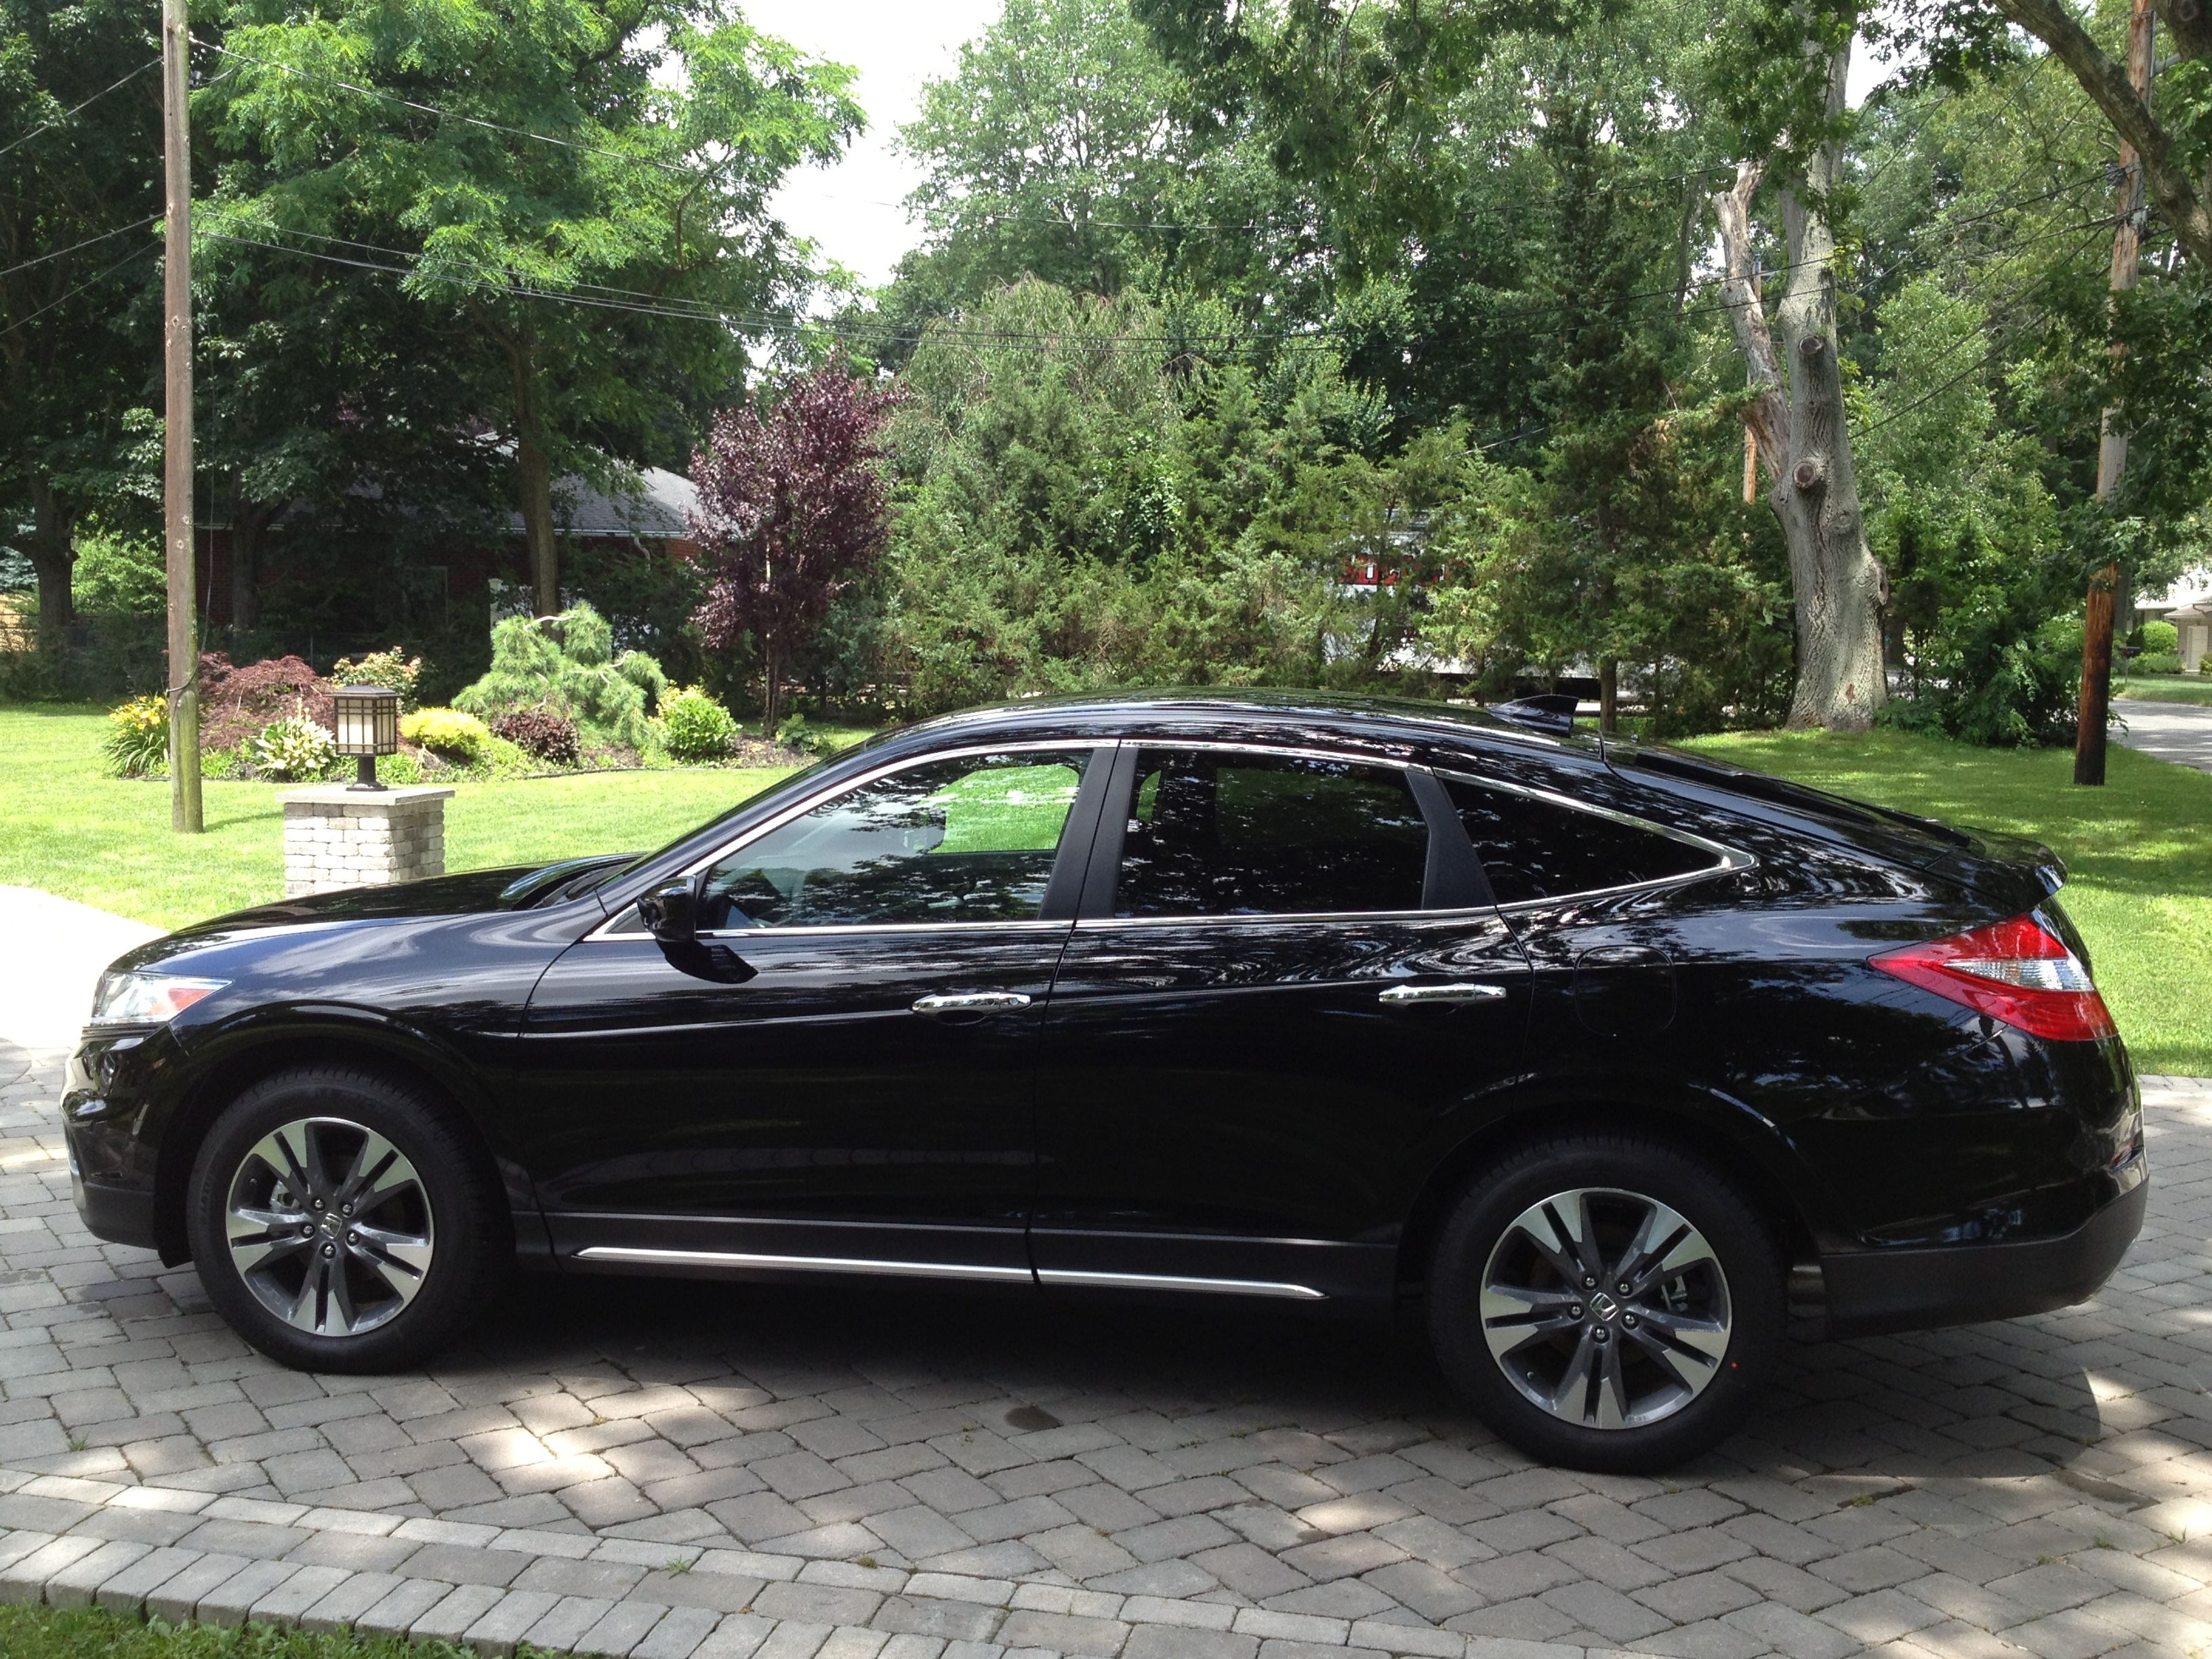 honda other used photos wallpaper and hd images wallpapers lagreat crosstour